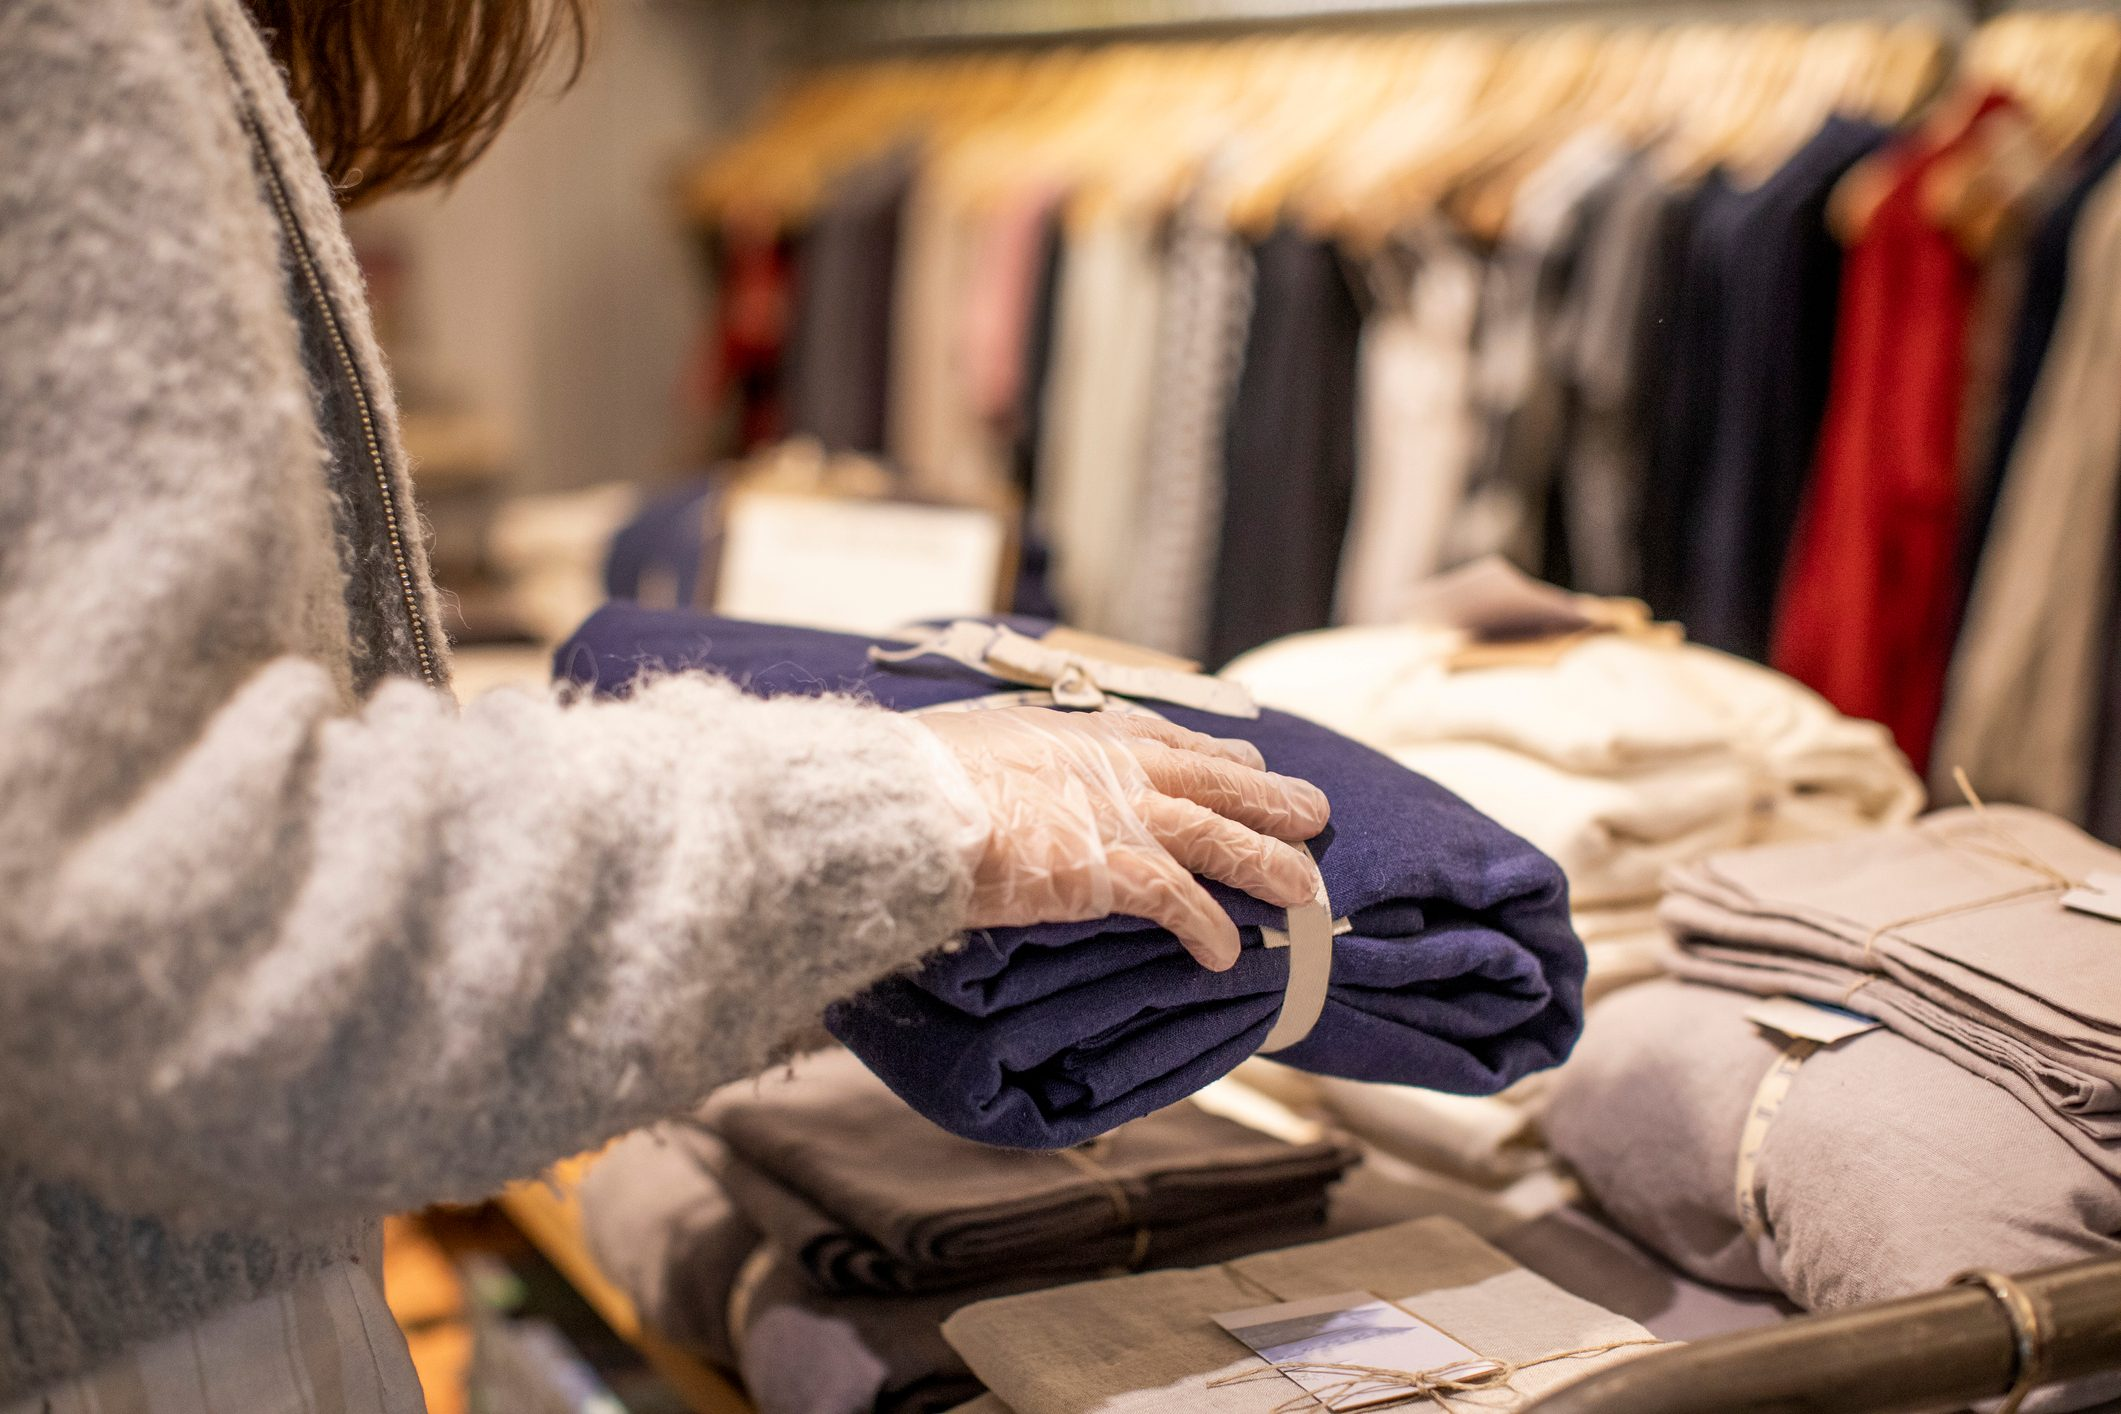 Close up on hands wearing protective gloves while working in fashion store.